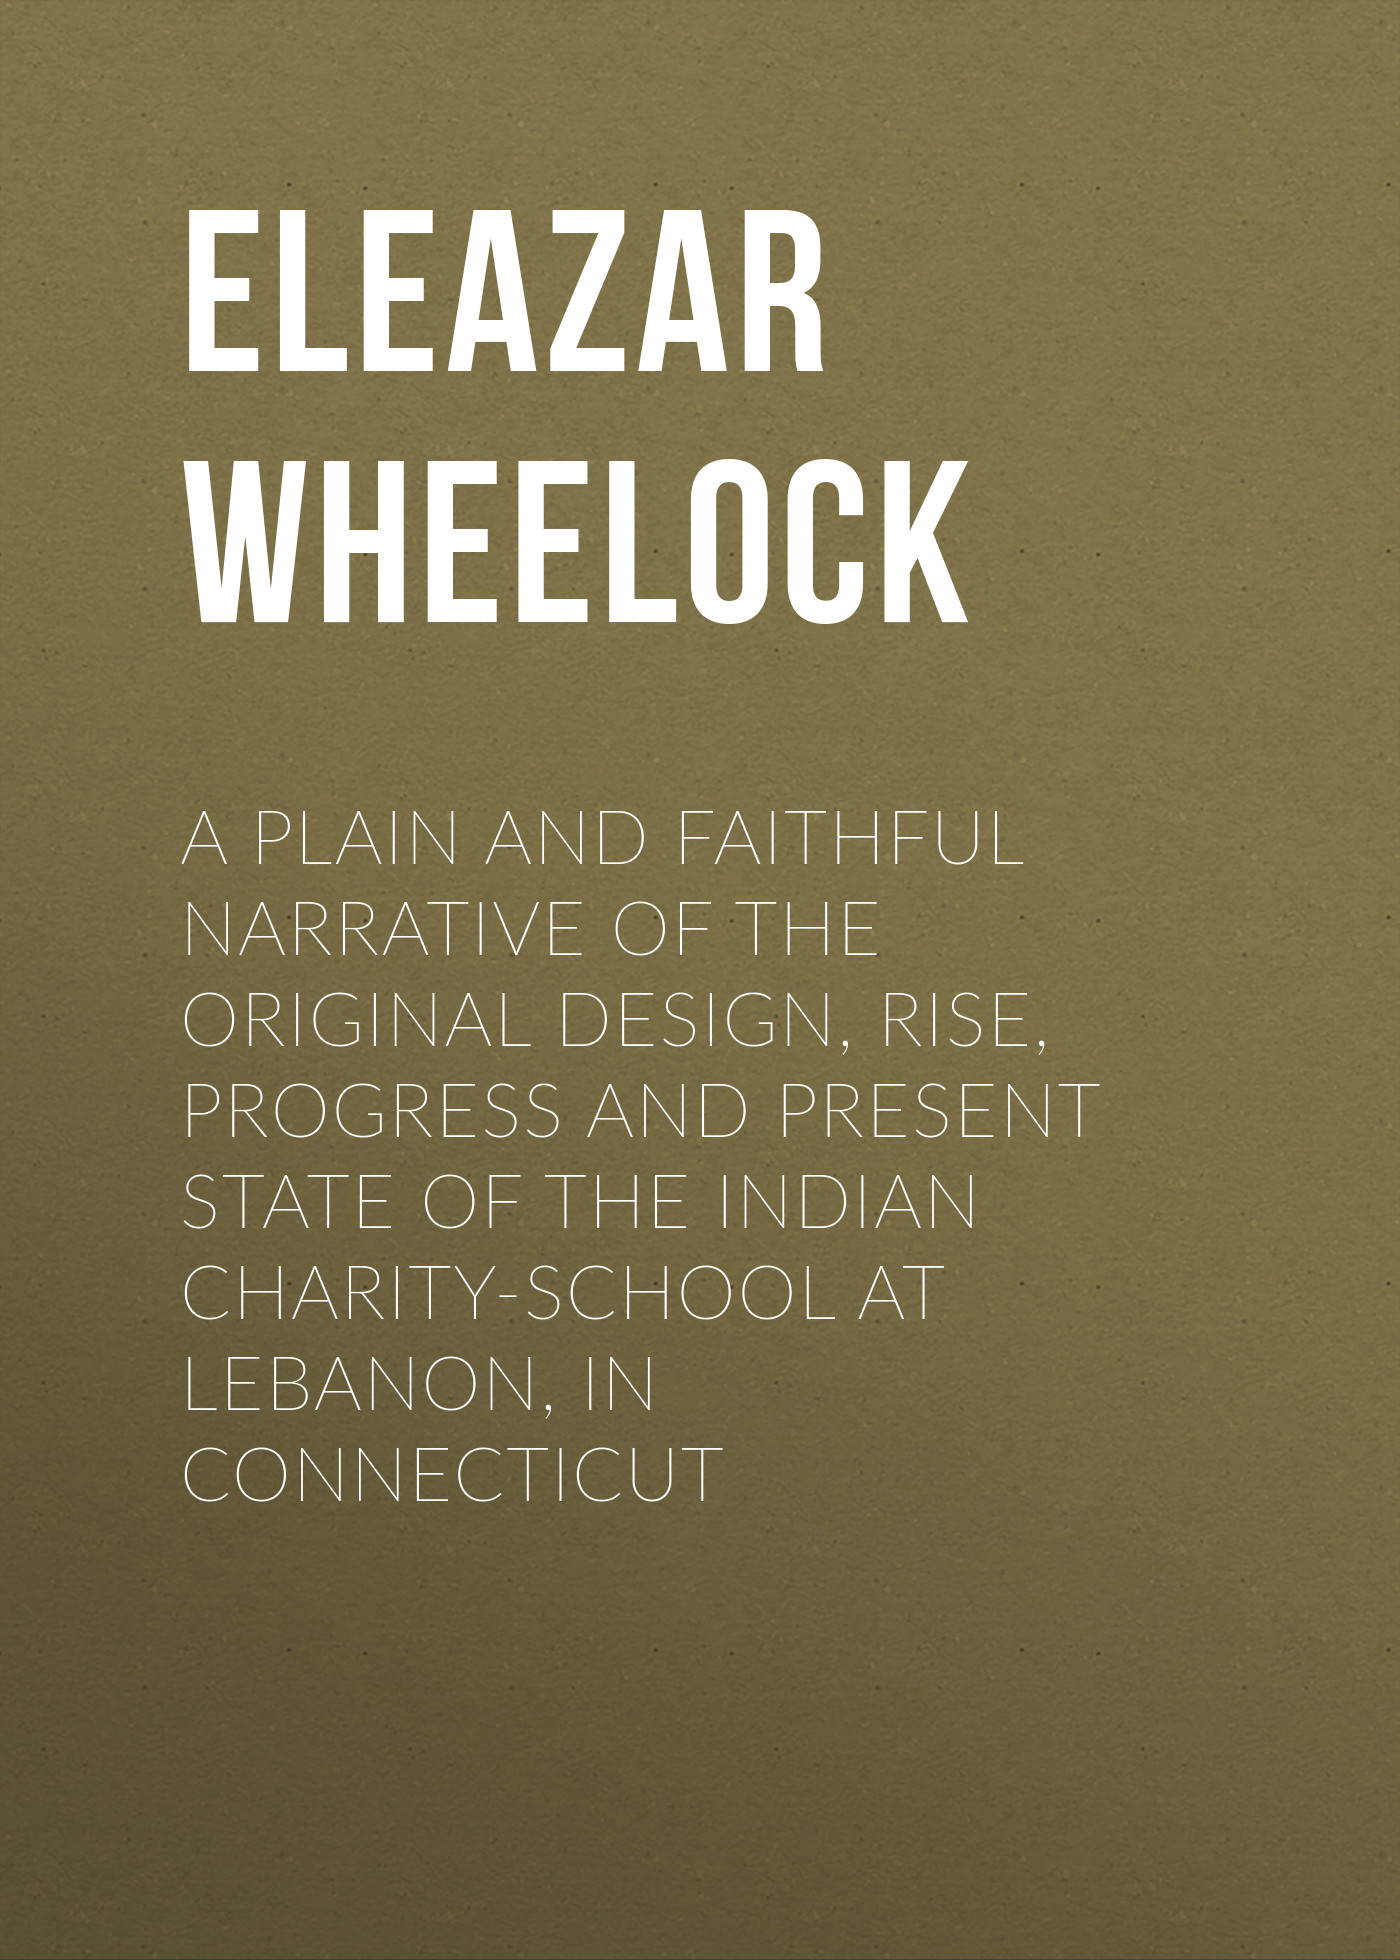 Eleazar Wheelock A plain and faithful narrative of the original design, rise, progress and present state of the Indian charity-school at Lebanon, in Connecticut simeon shaw history of the staffordshire potteries and the rise and progress of the manufacture of pottery and porcelain